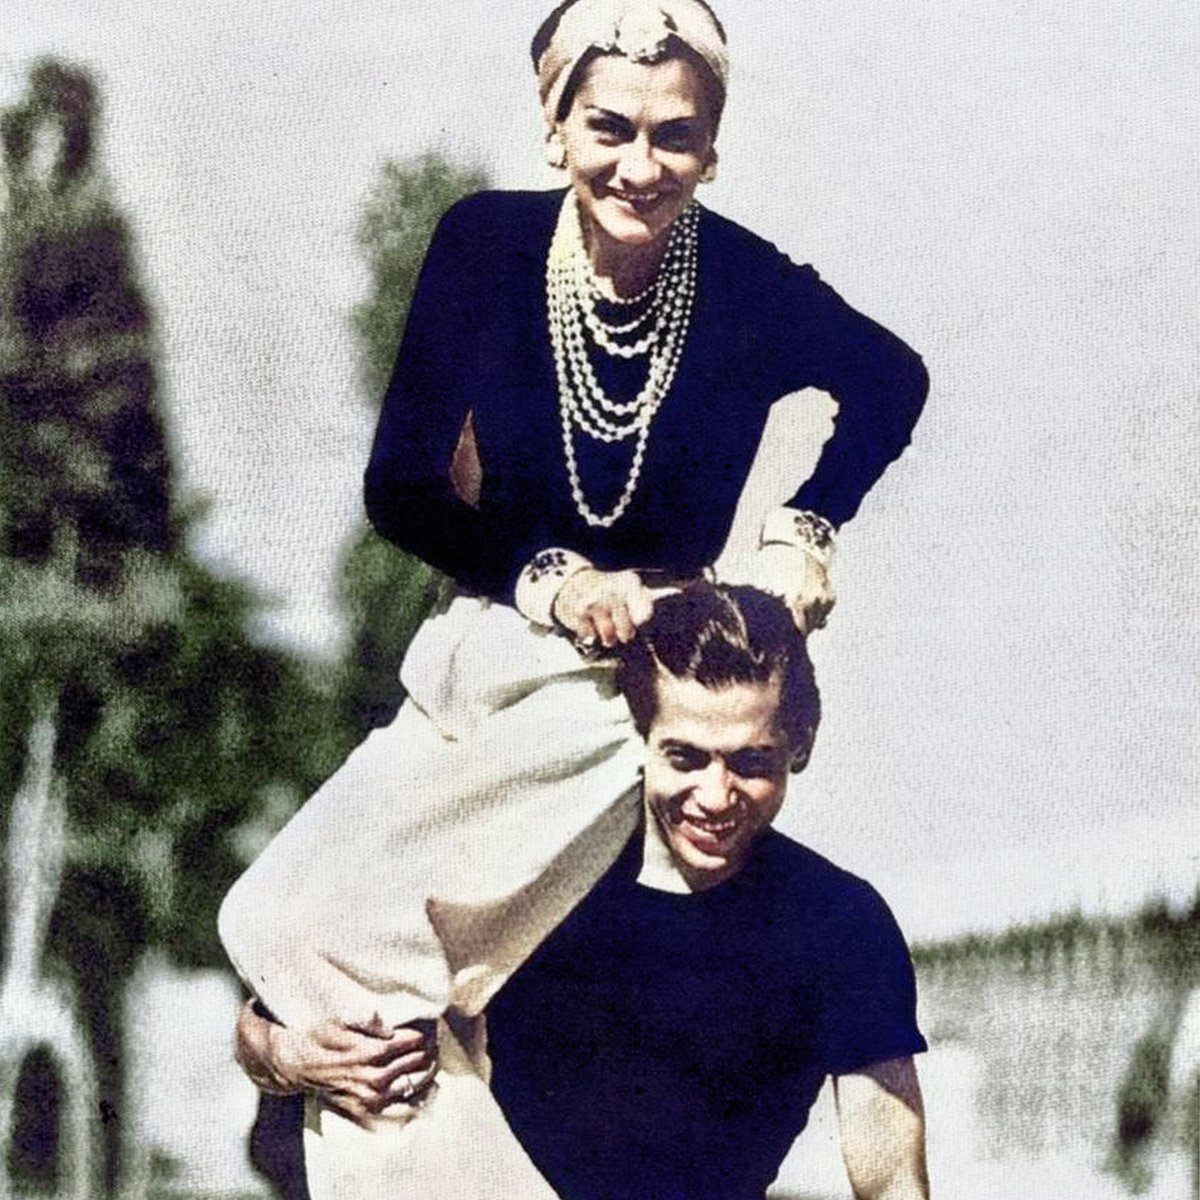 Gabrielle Chanel shared a lifelong friendship with dancer and choreographer Serge Lifar, who considered her his artistic godmother. Step into the story of Gabrielle Chanel and the pioneers of modern dance, Inside CHANEL:  https://t.co/F5Yswei387  #InsideCHANEL #GabrielleChanel https://t.co/5paKLRume2